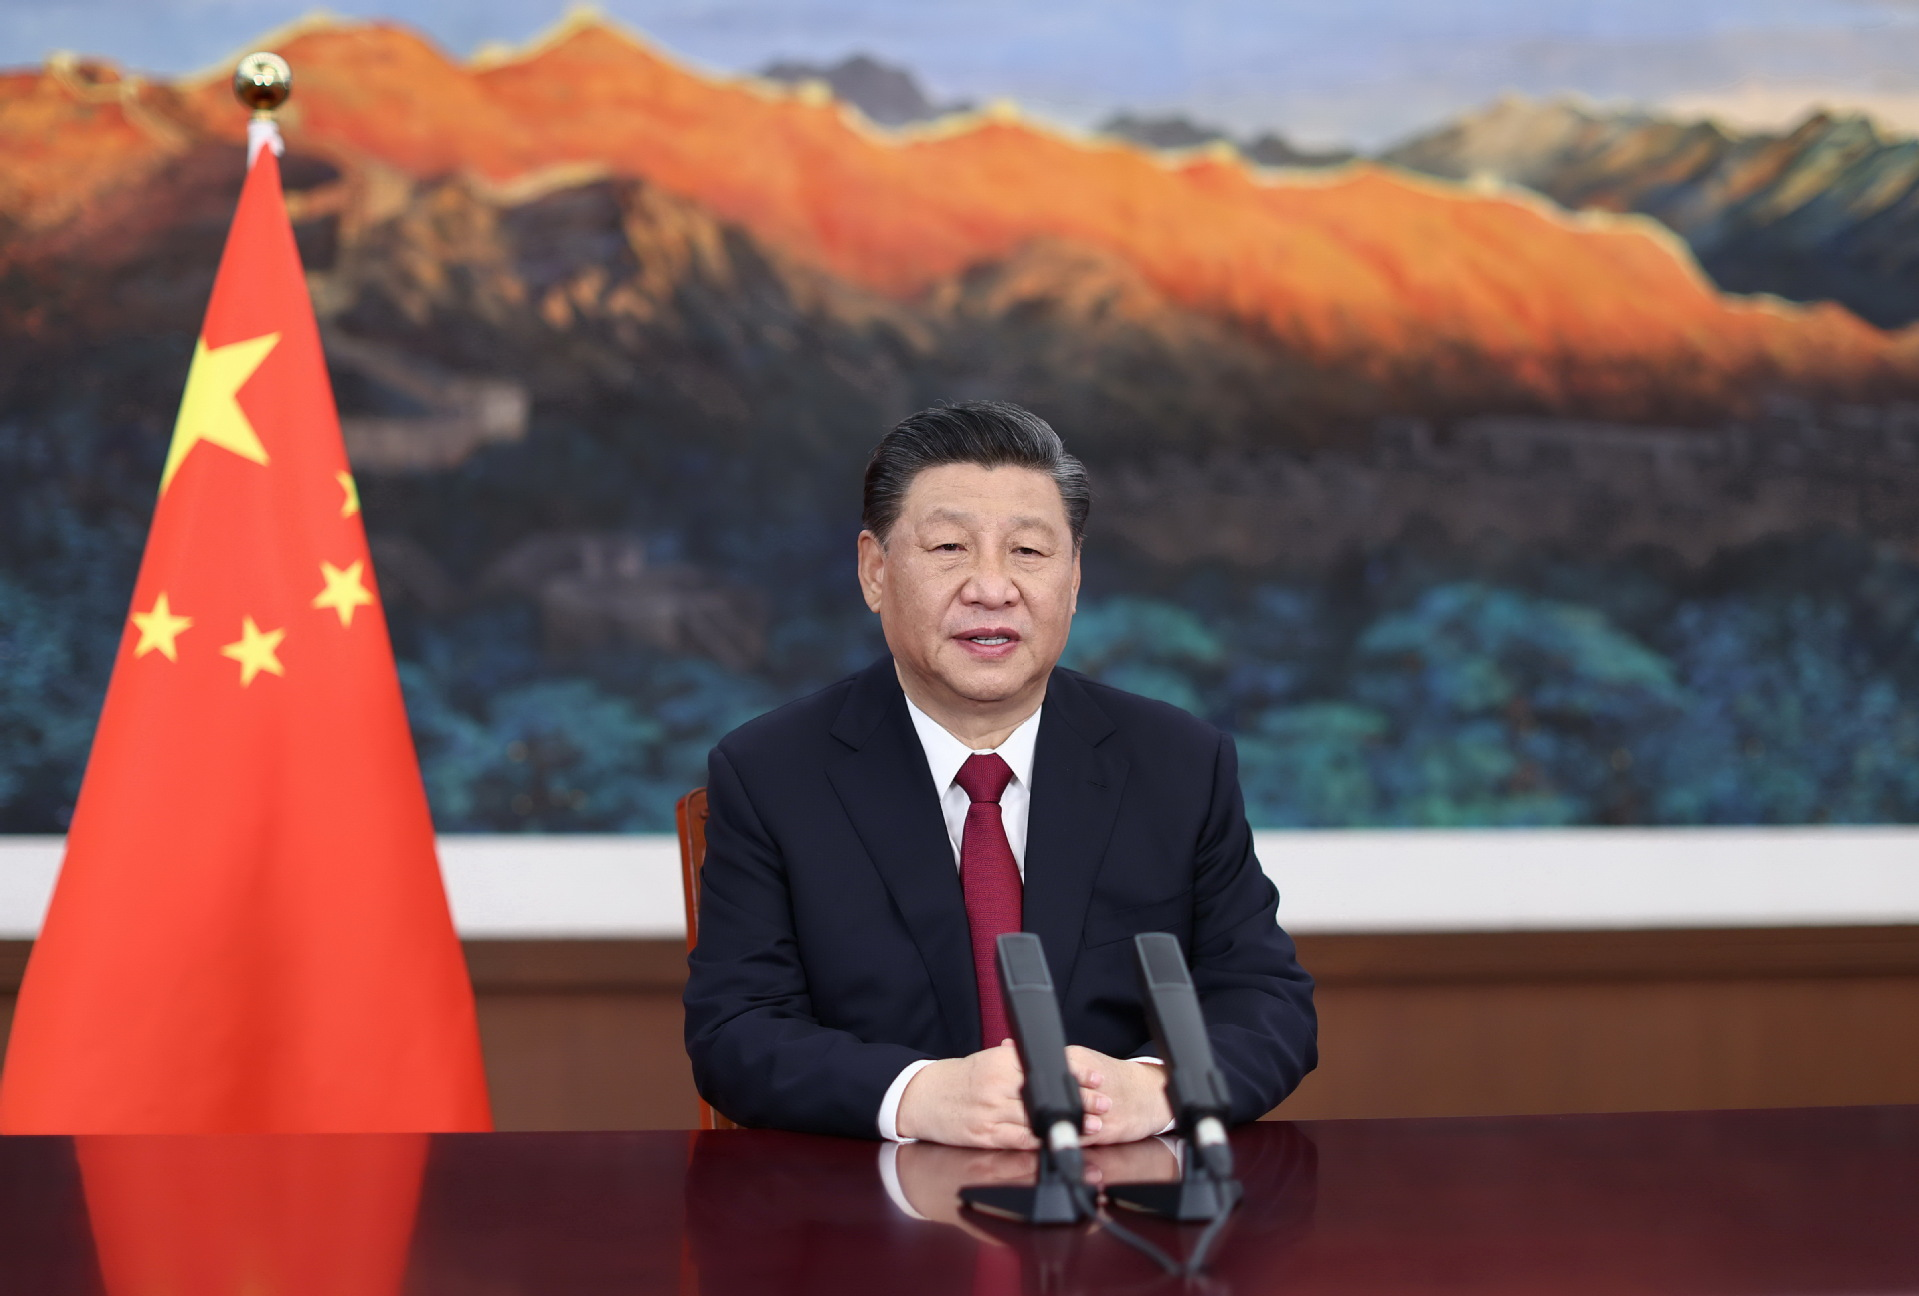 Full Text: Keynote speech by Chinese President Xi Jinping at the opening ceremony of the Boao Forum for Asia Annual Conference 2021